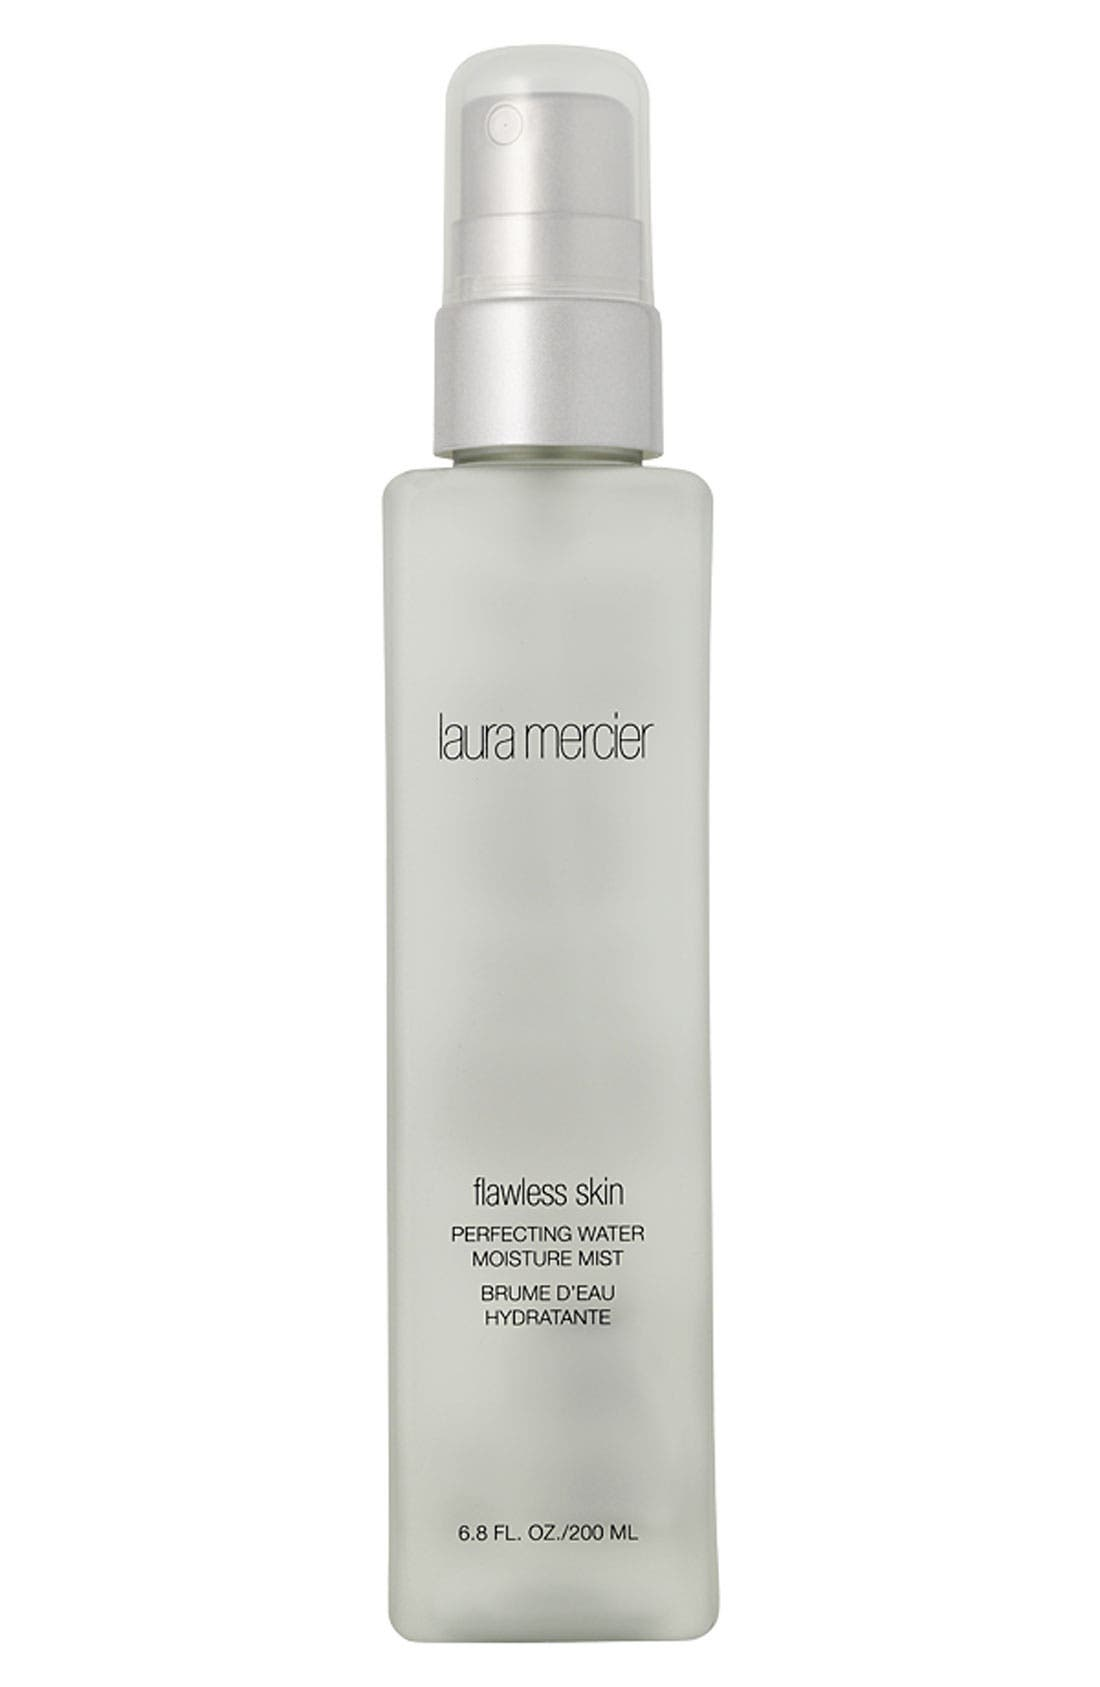 Laura Mercier 'Flawless Skin' Perfecting Water Moisture Mist